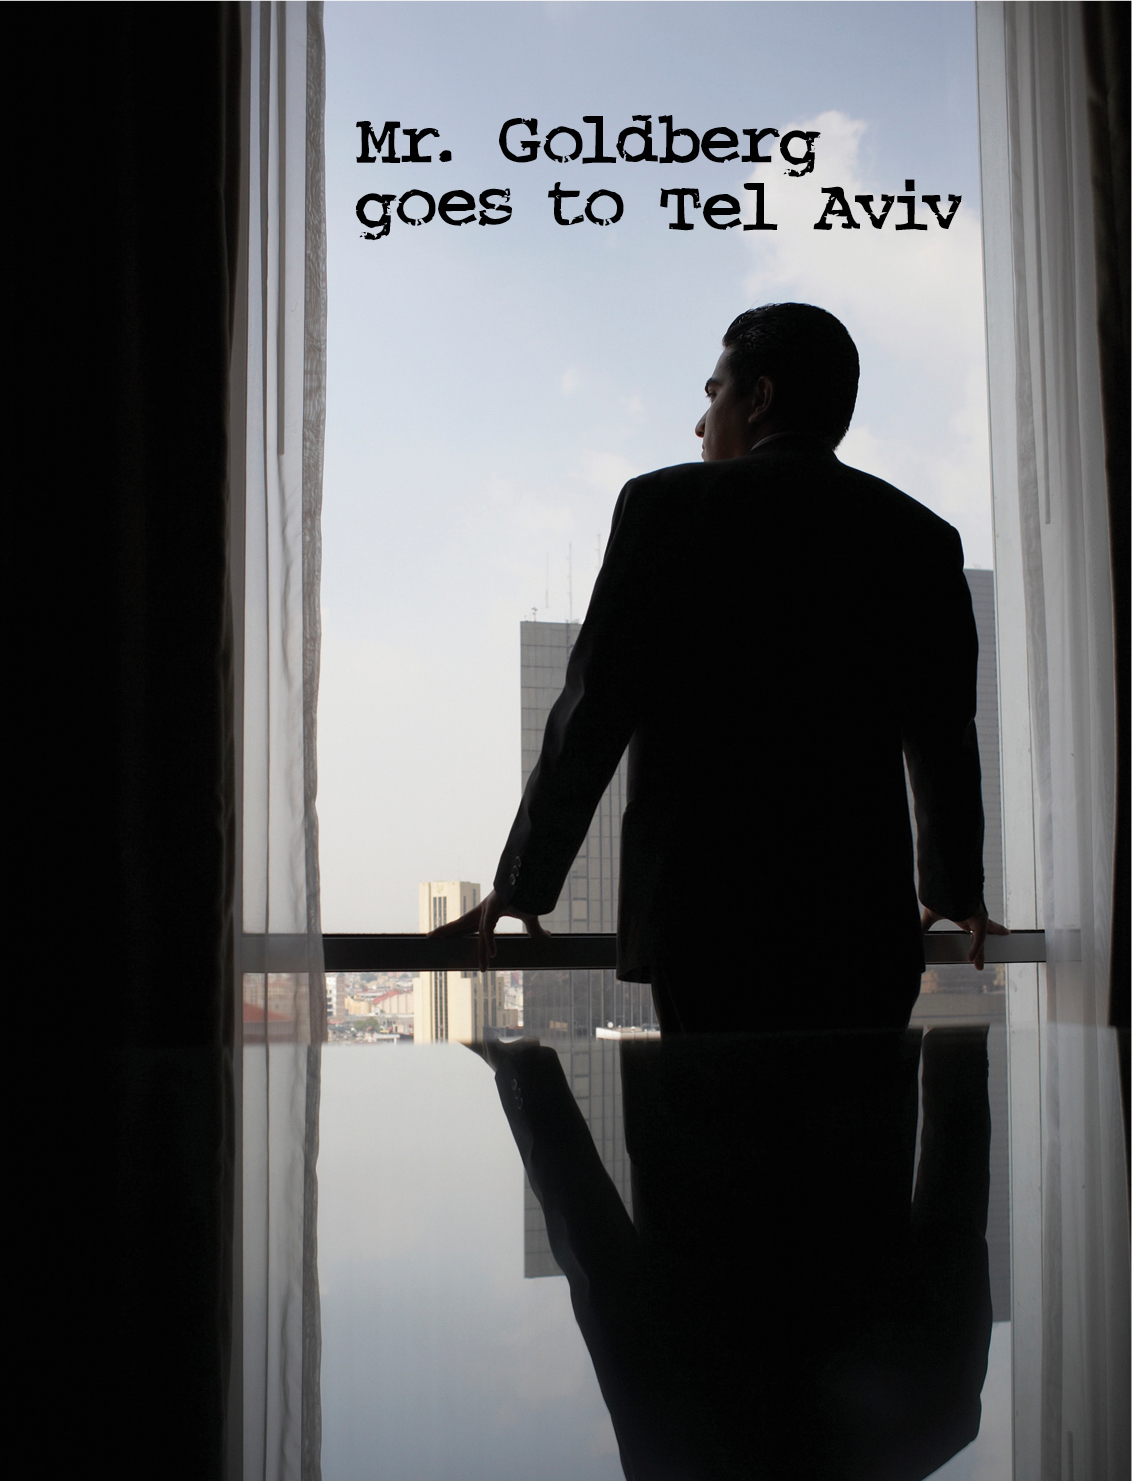 Infinitheatre - Mr. Goldberg goes to Tel Aviv